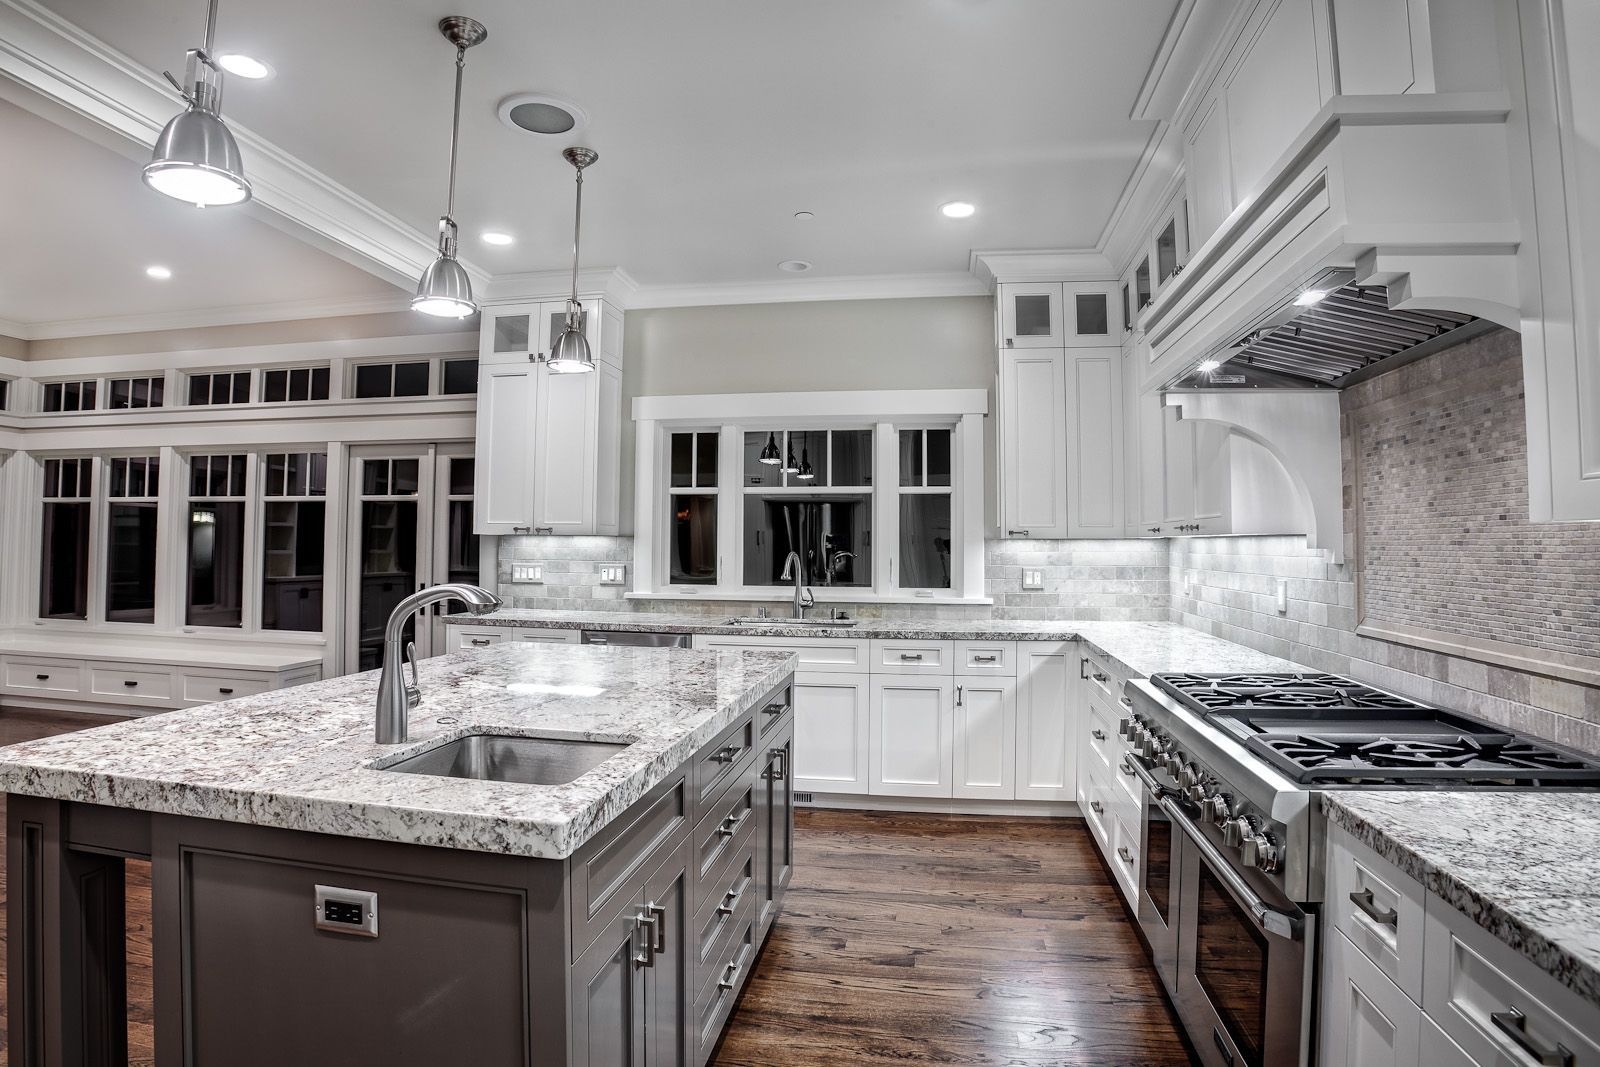 Of White Kitchens White Cabinets Kitchen Macavoy Modern White Kitchen Kitchen With